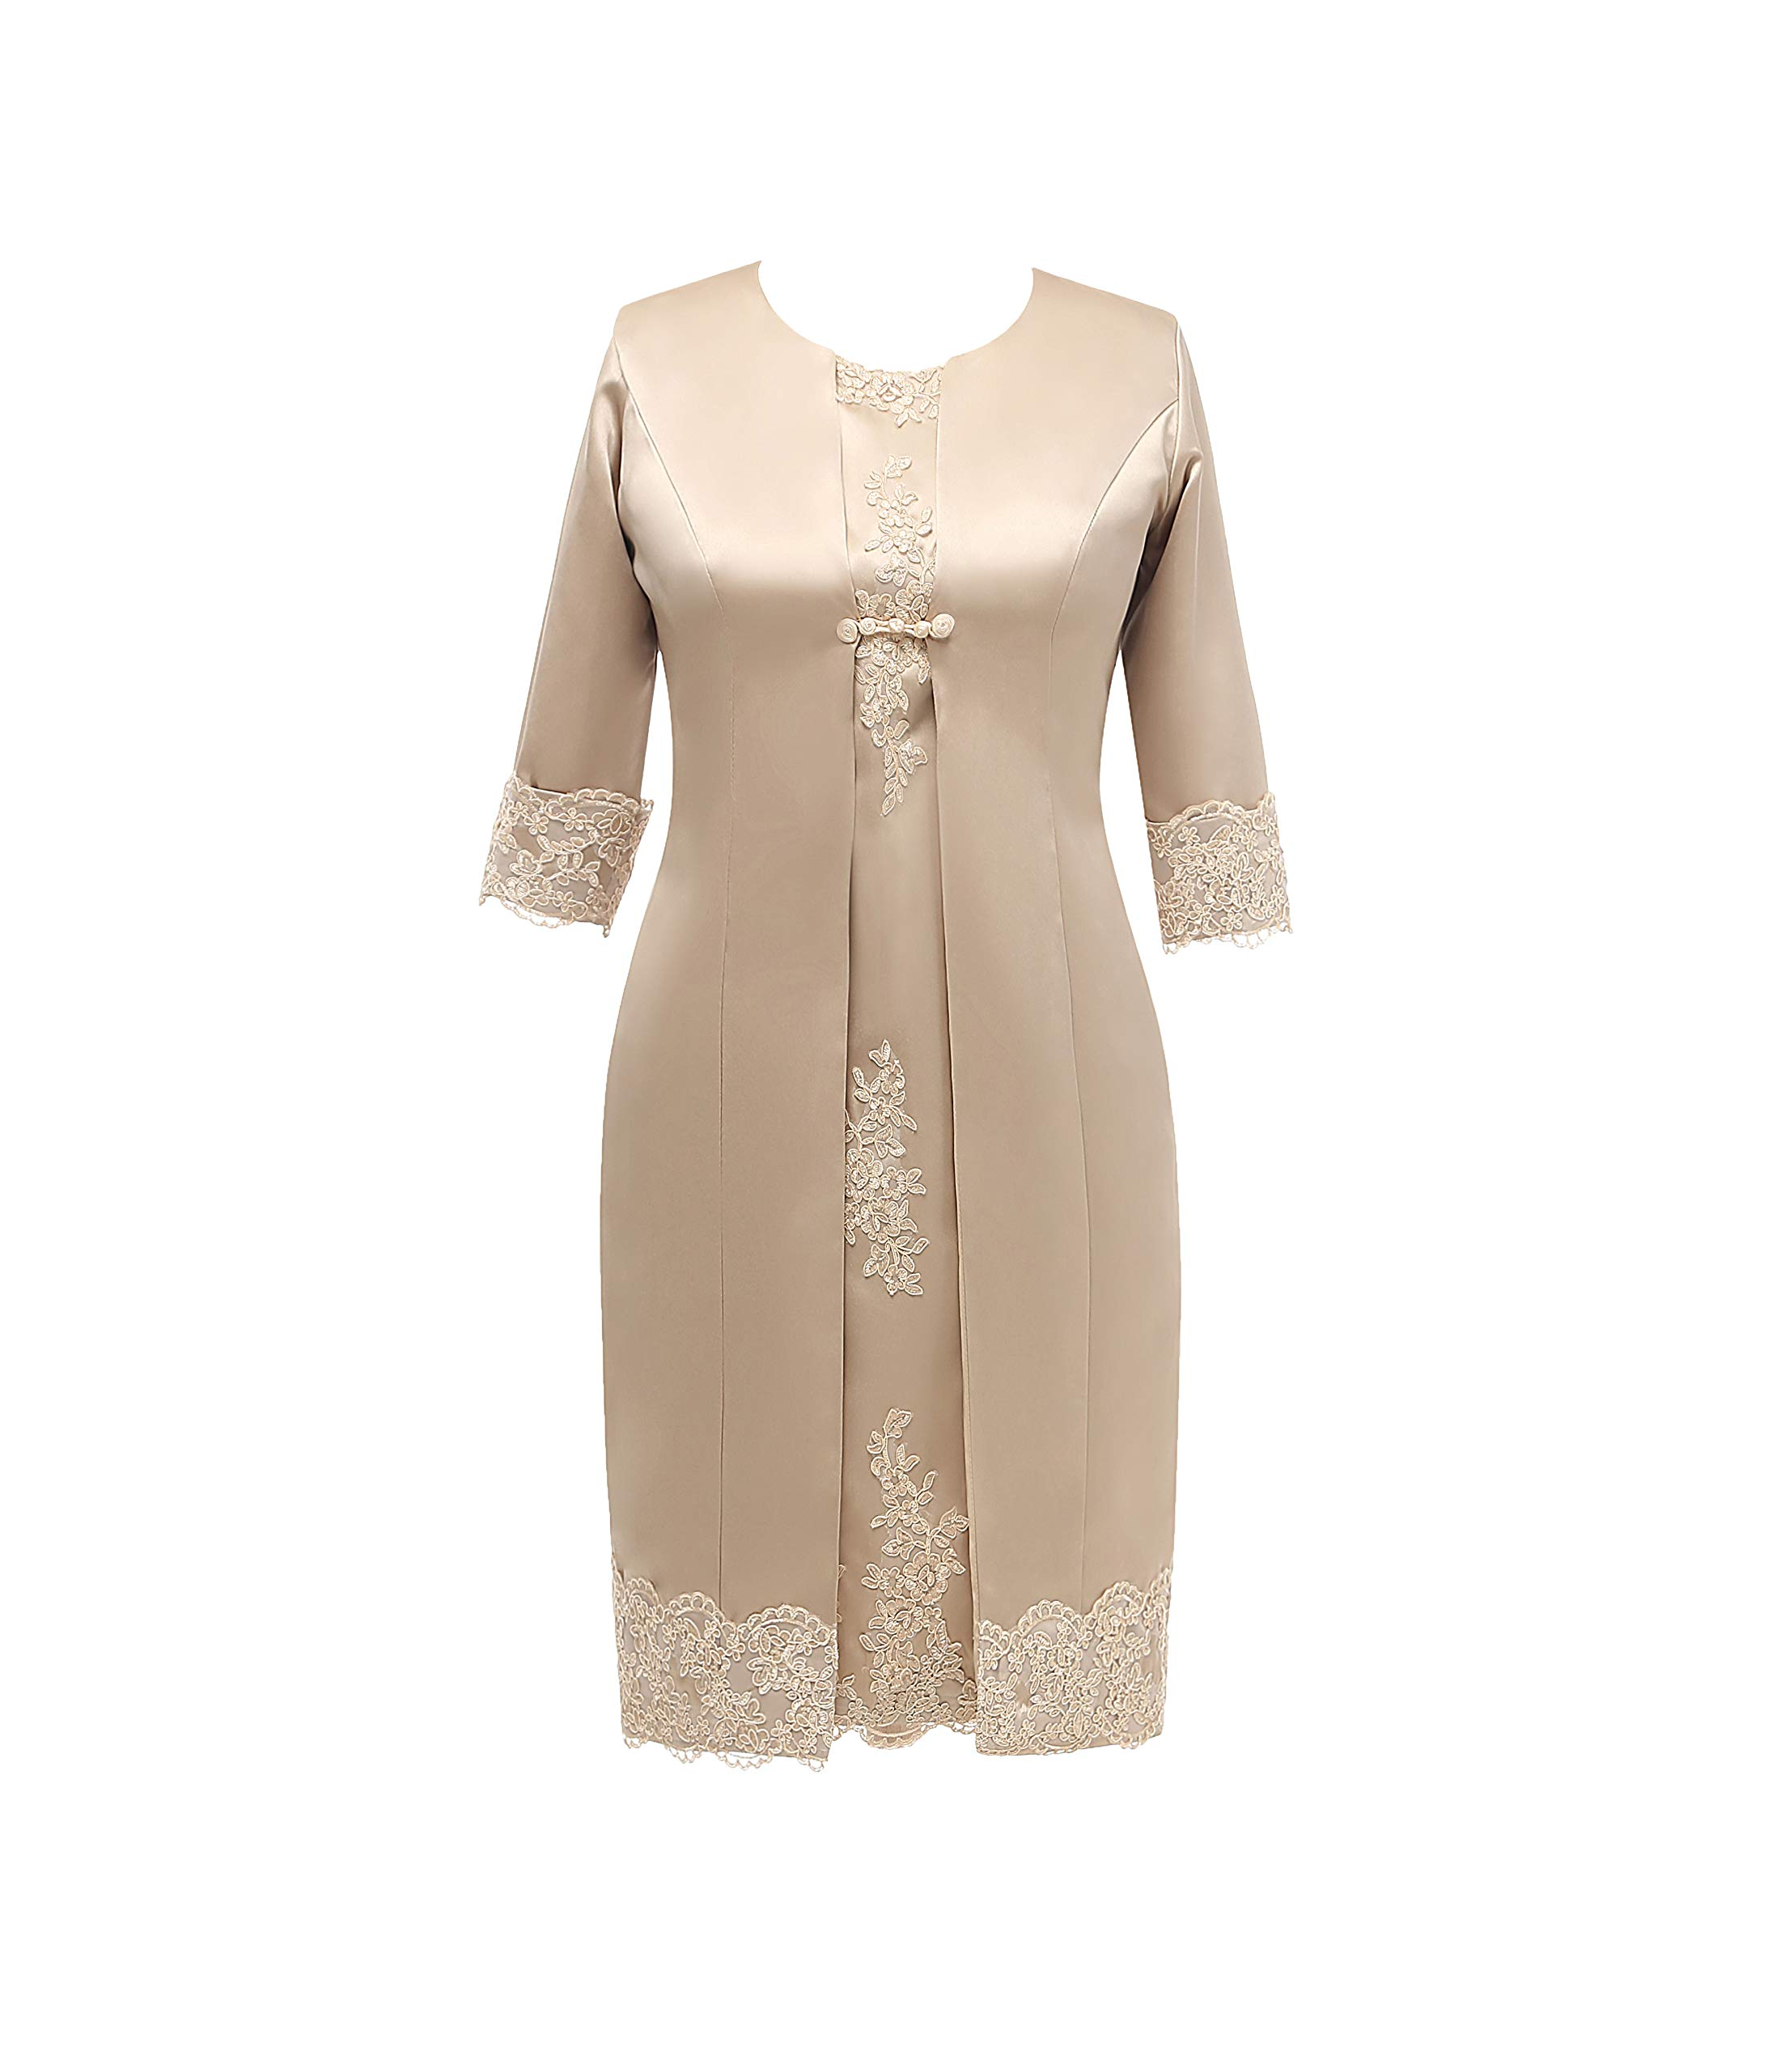 Jingdress Tea Length Mother Of The Bride Dresses With